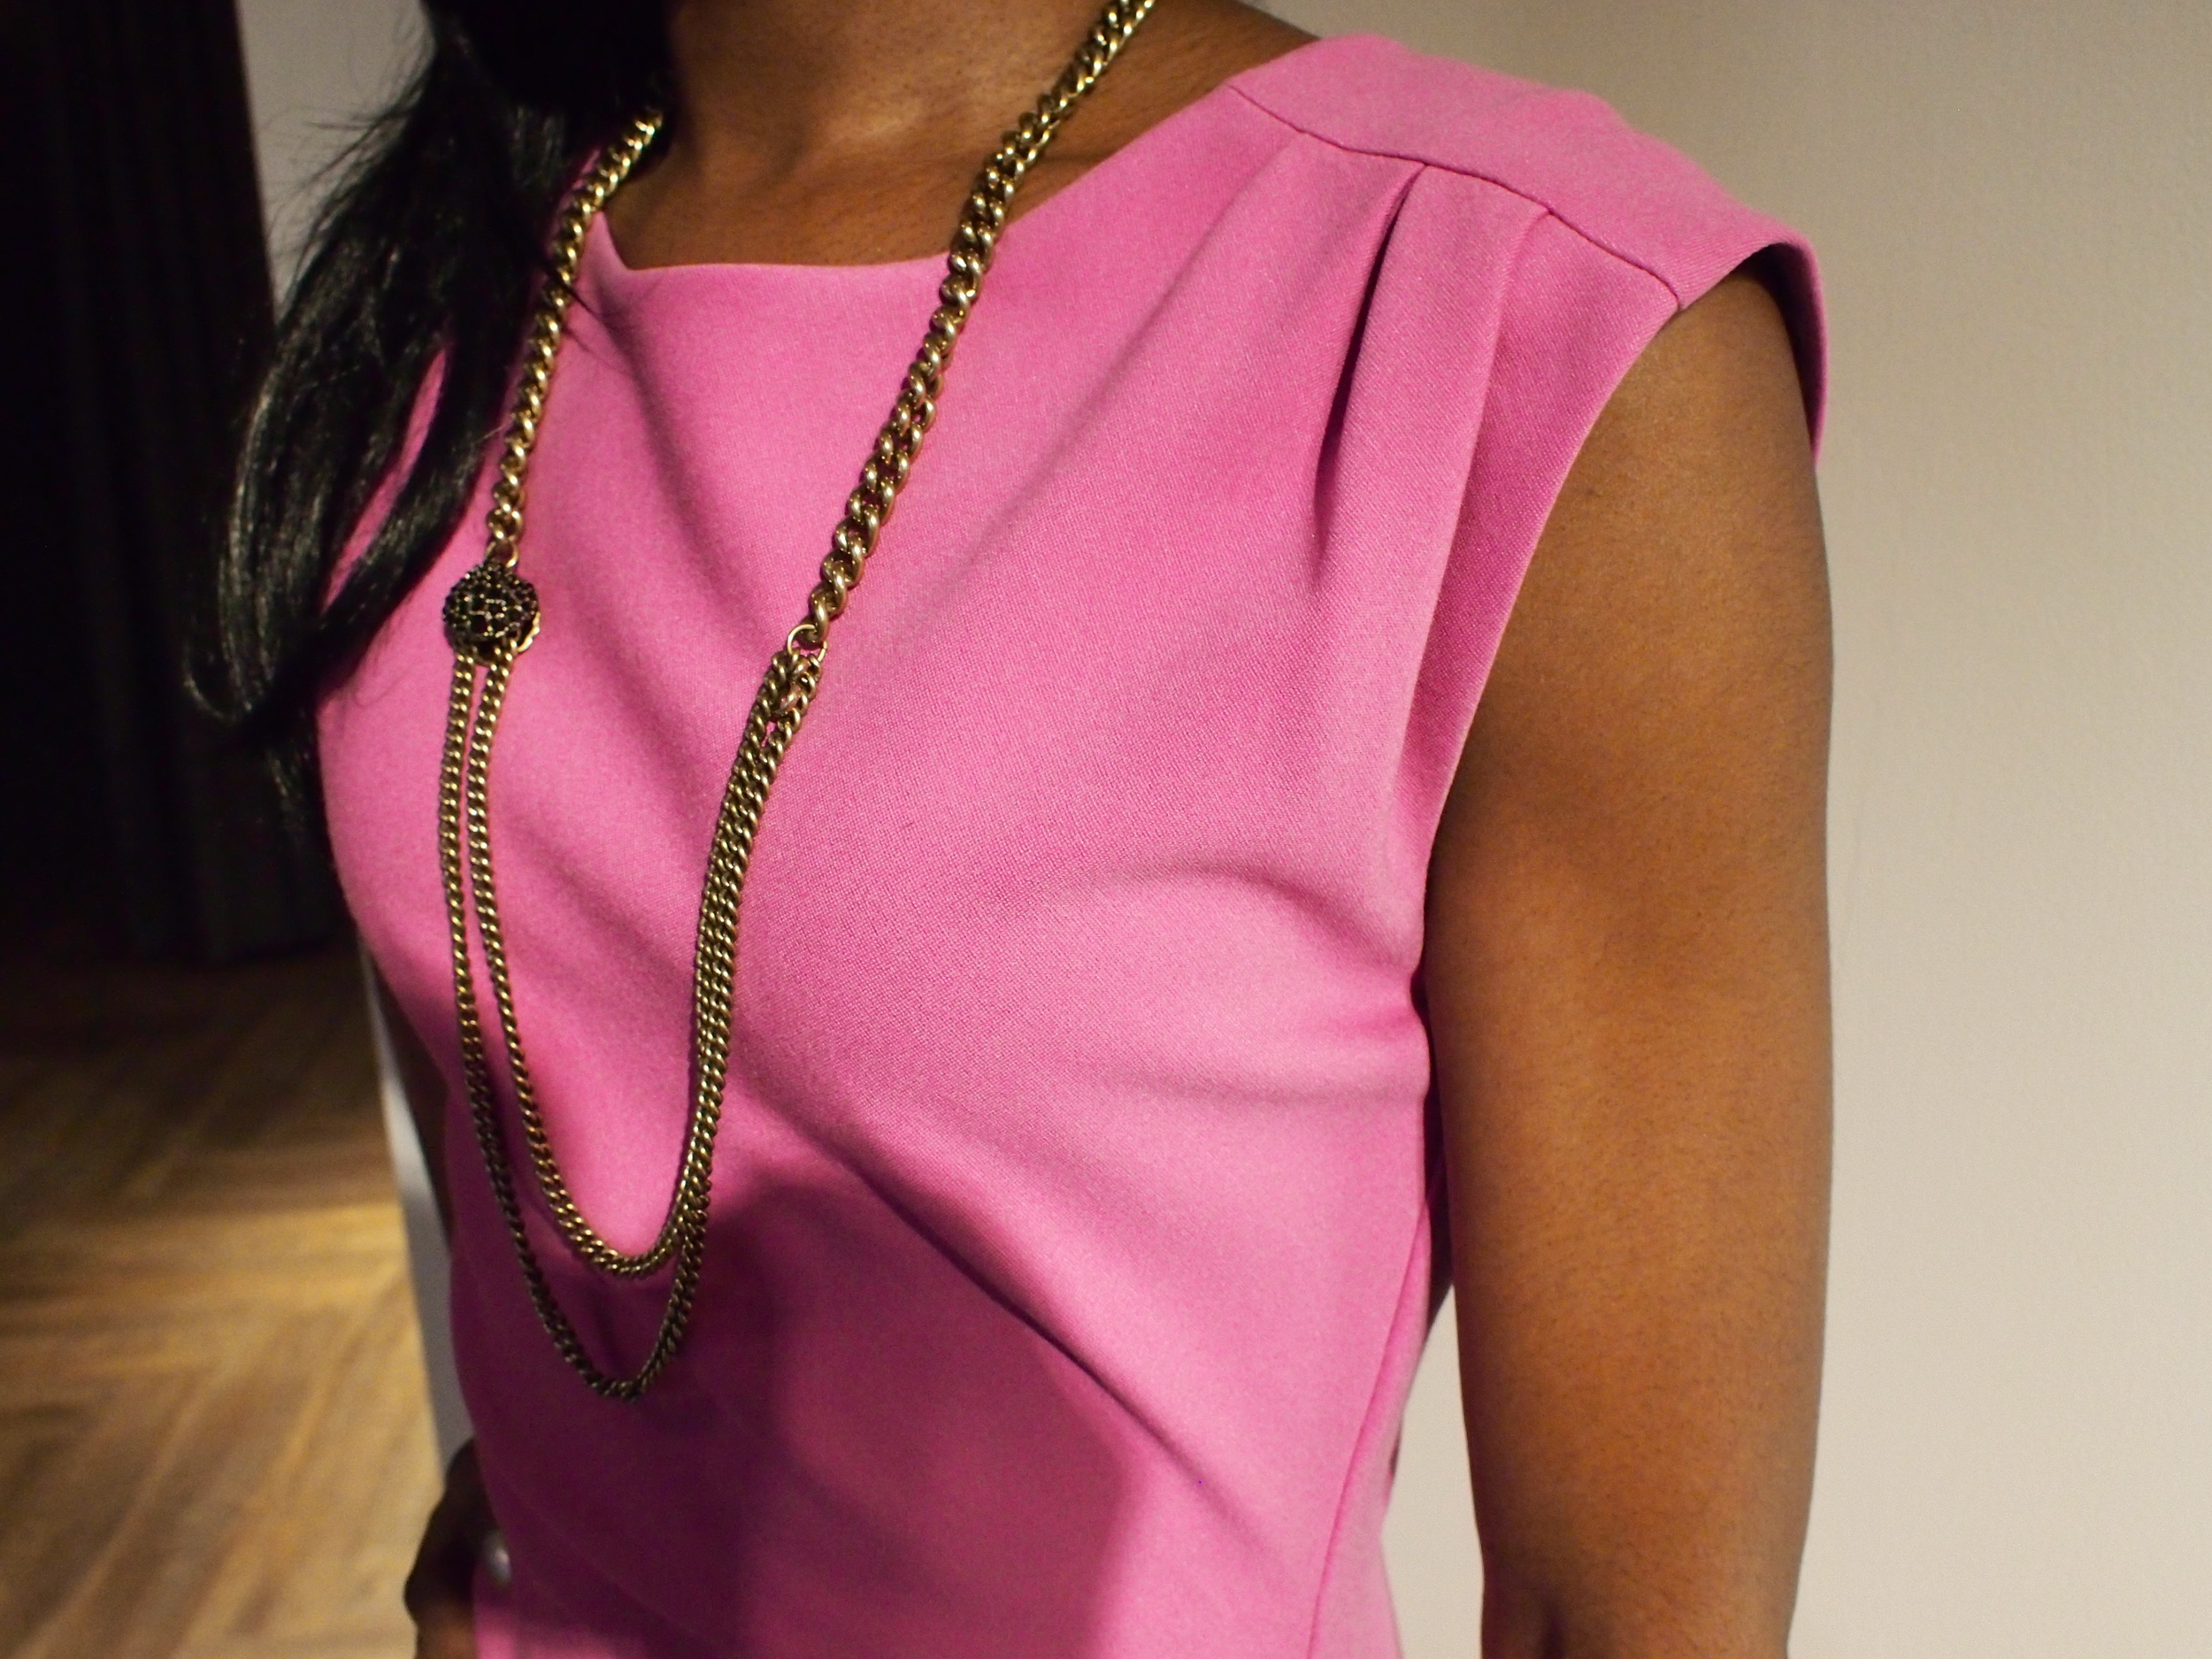 Paired with a gold chain necklace by Giles & Brothers $258